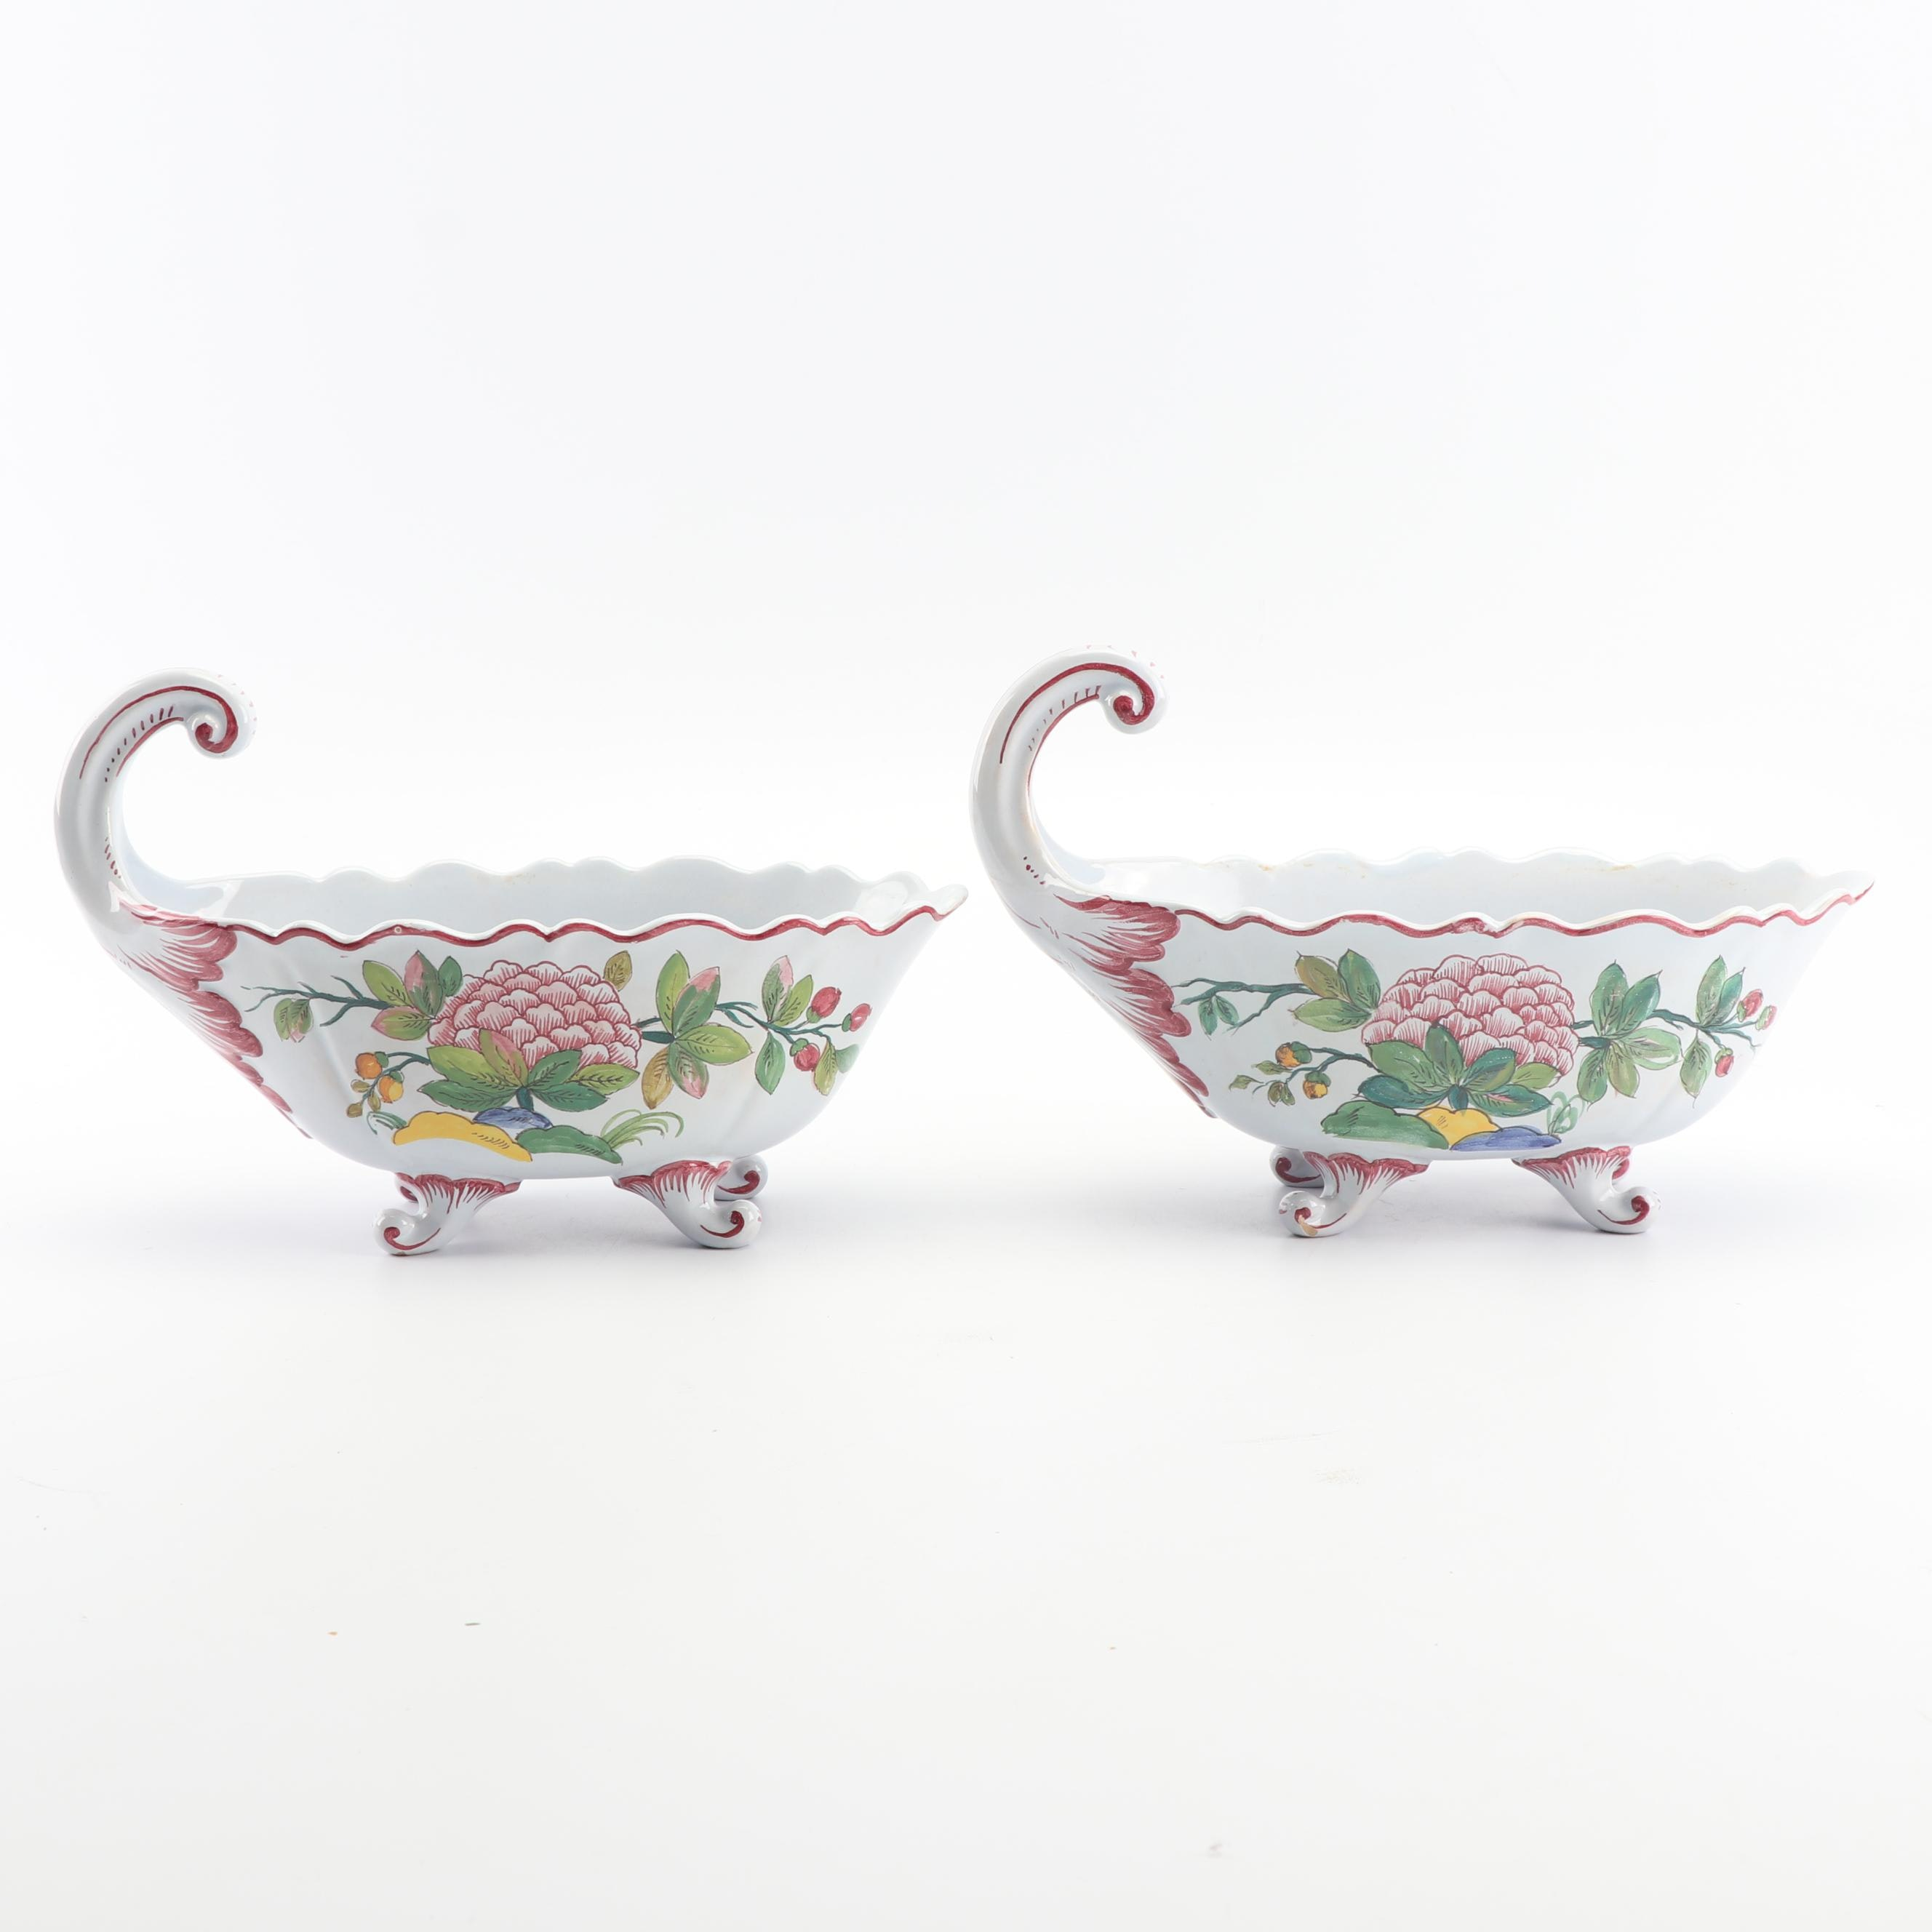 Italian Hand-Painted Ceramic Faience Sauce Boats with Handles